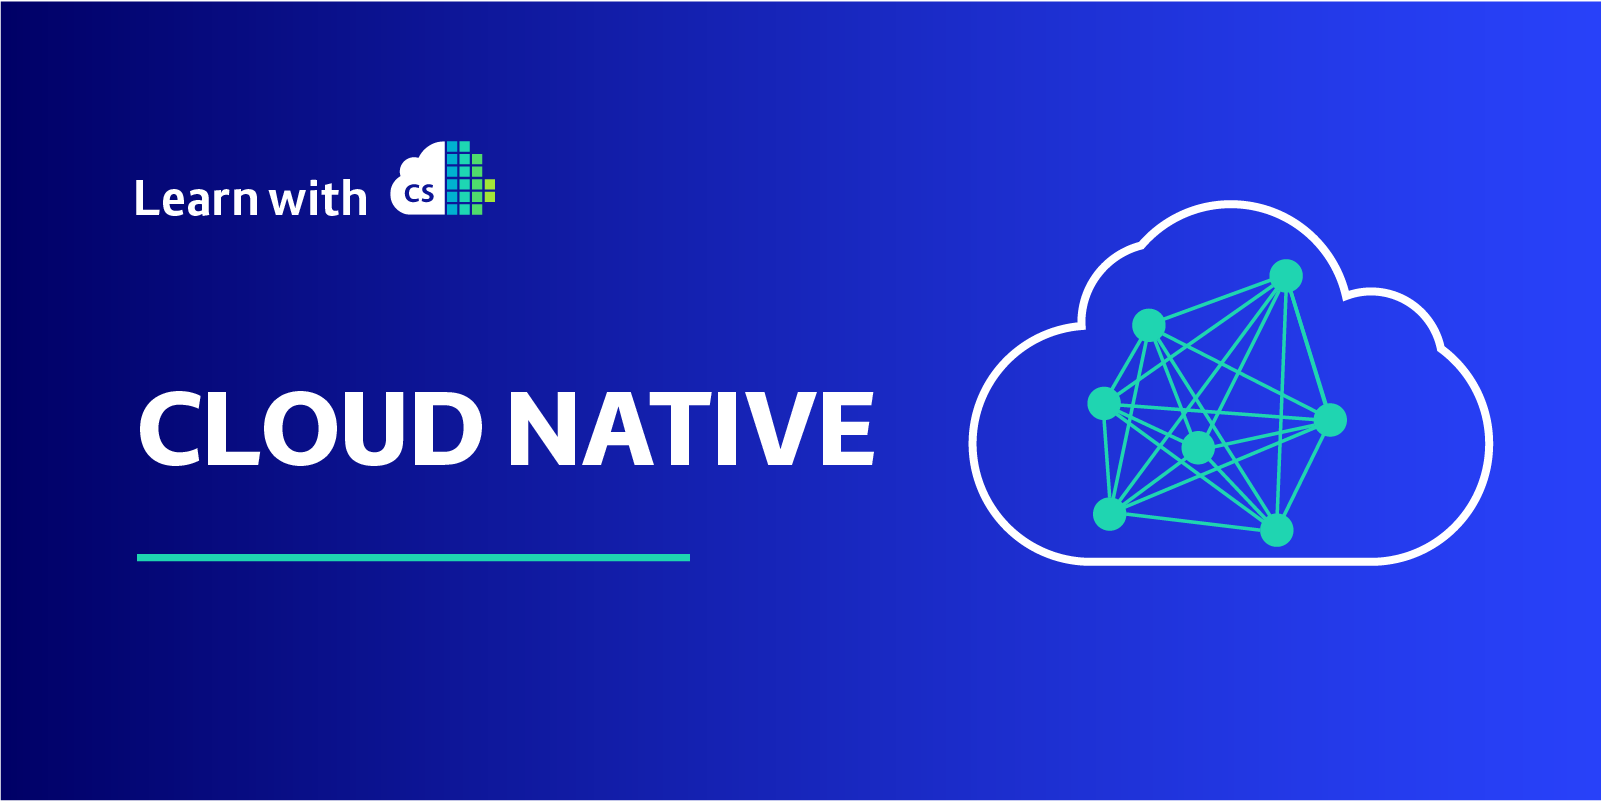 cloud native_1